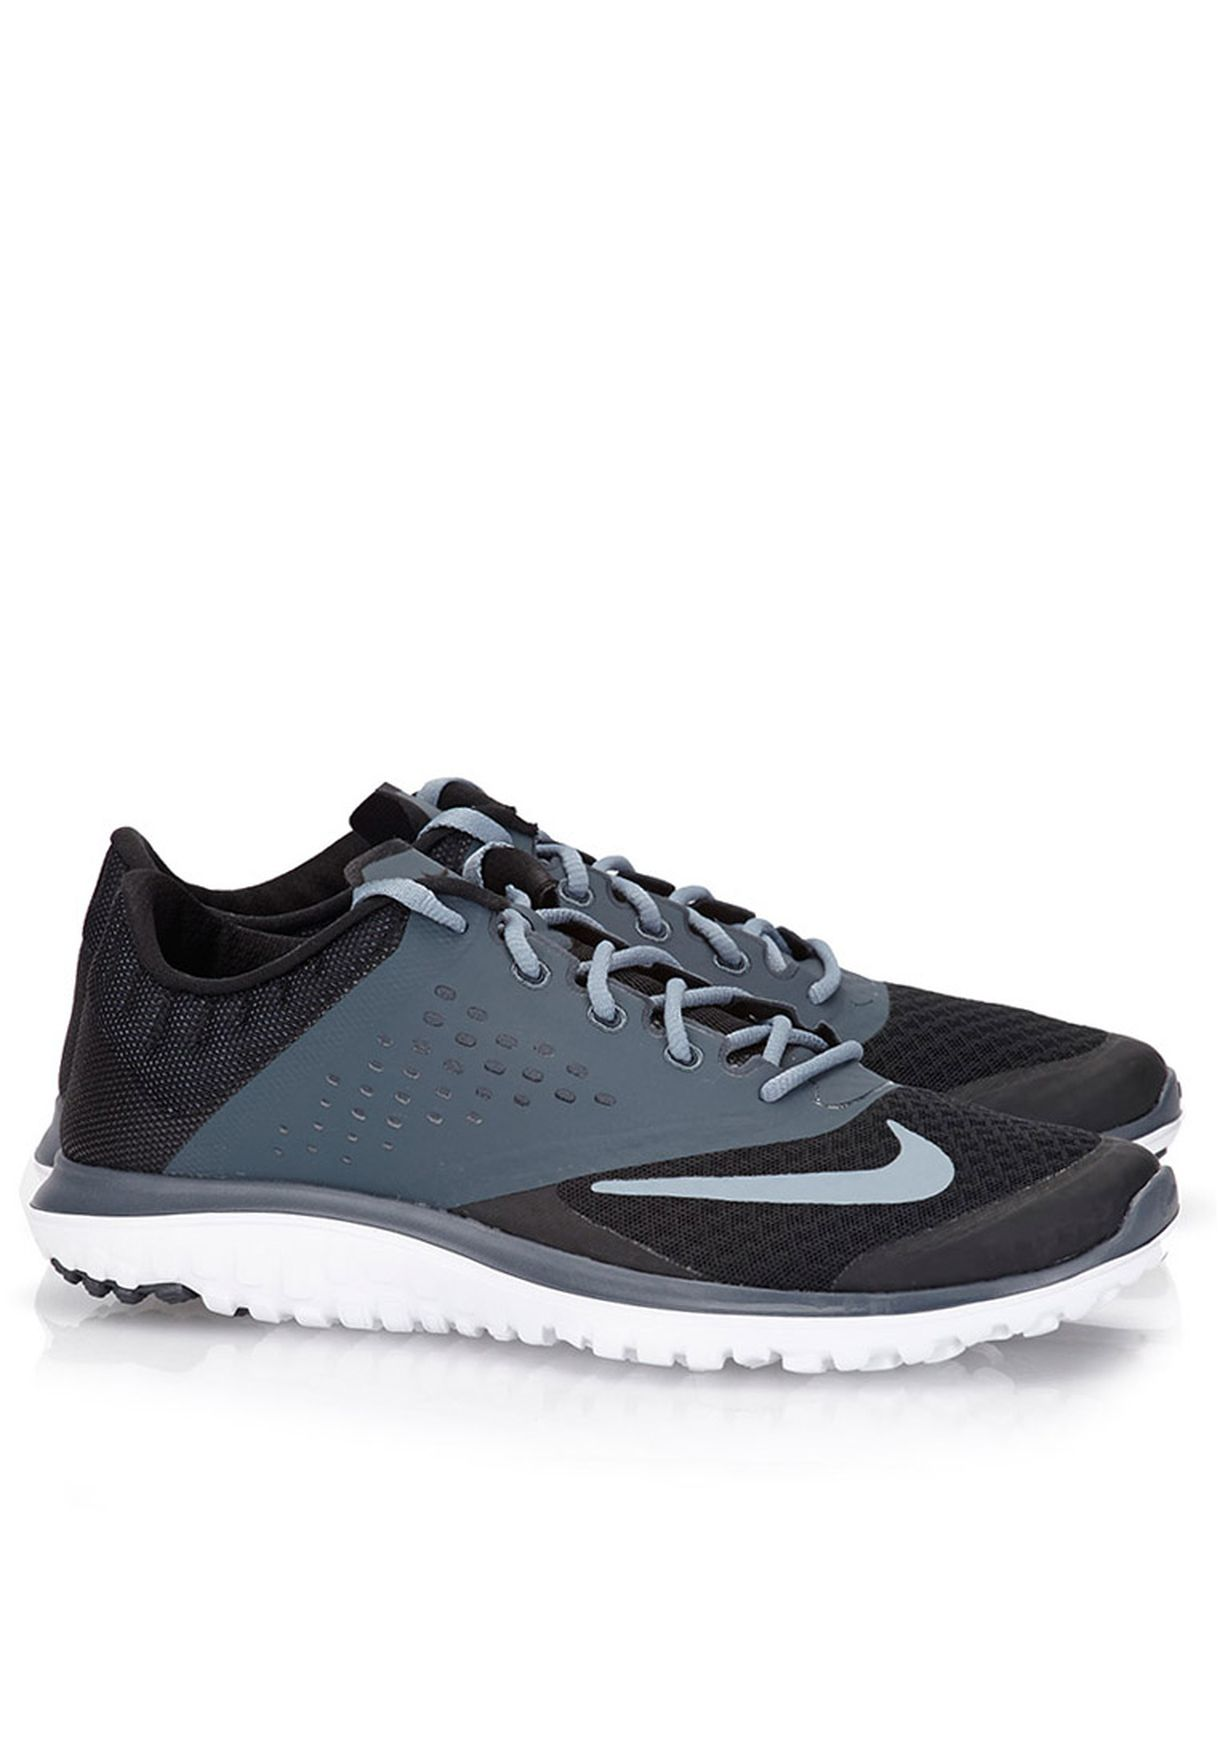 c723c93425a8 Shop Nike black FS Lite Run 2 684667-001 for Women in Oman - NI727SH99FQY